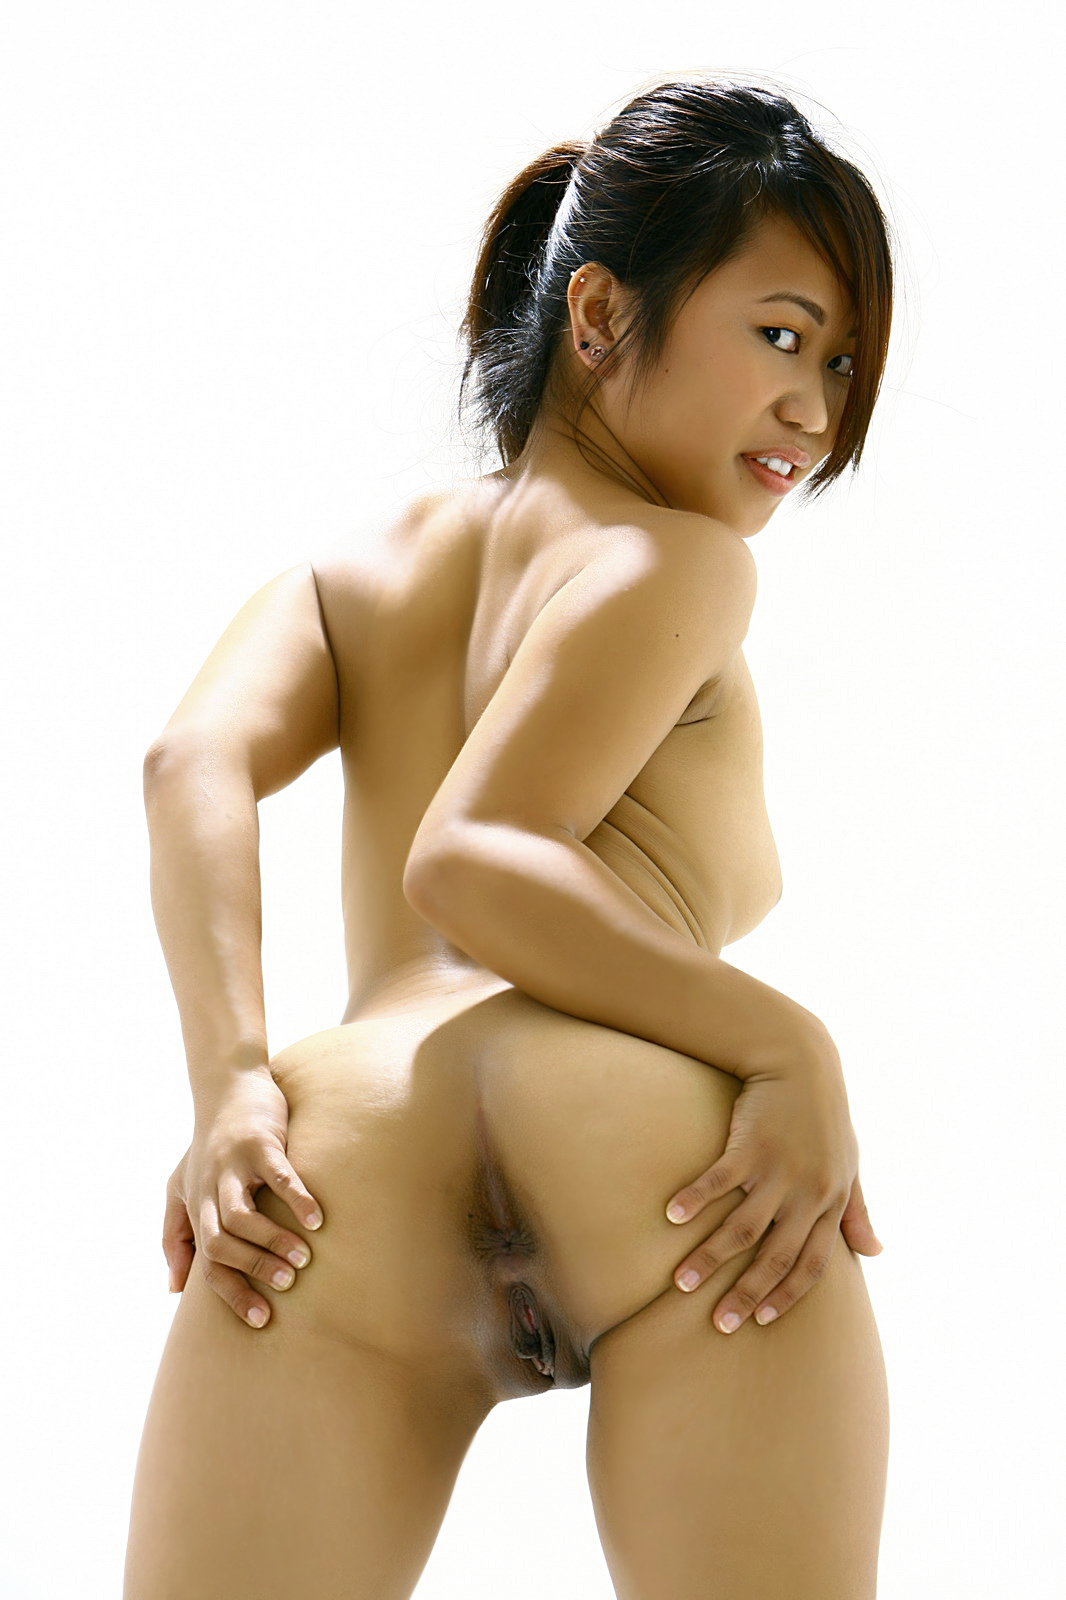 Tiny female asian ass nude confirm. And